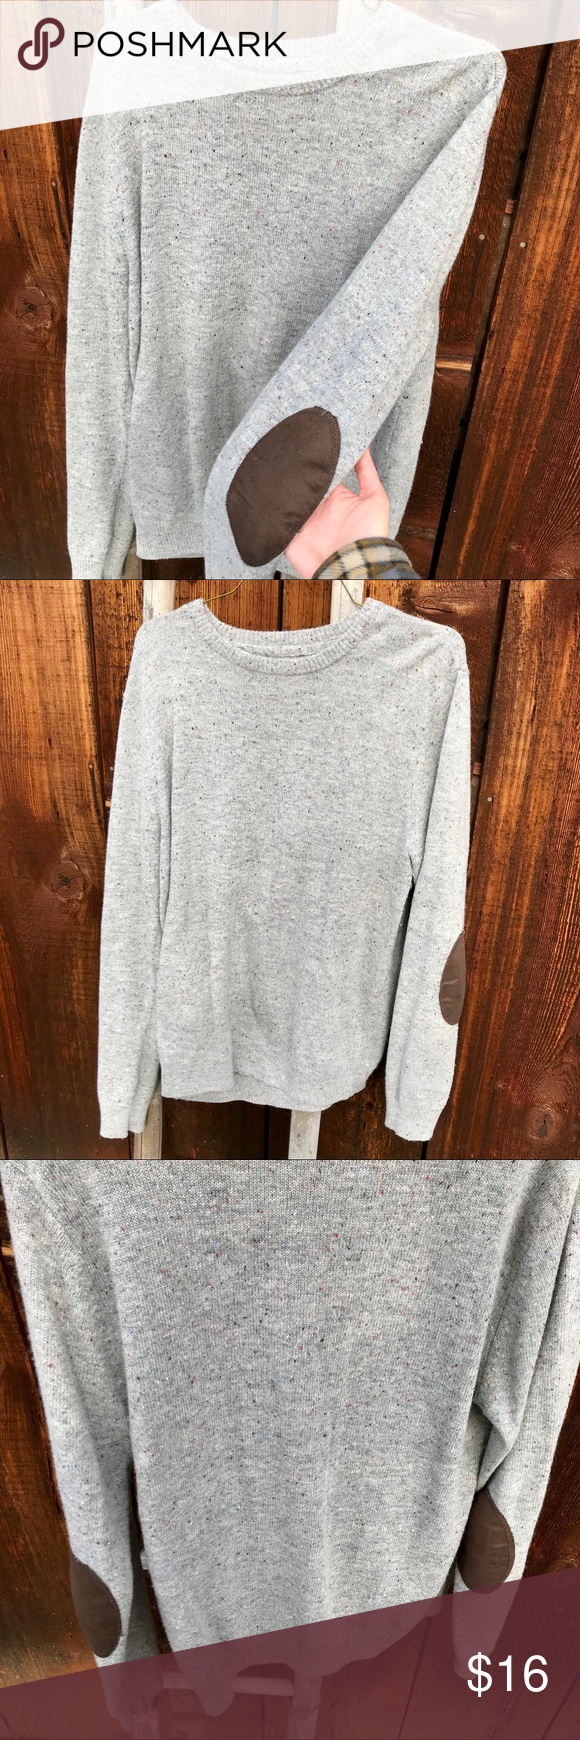 Elbow patch sweater | Oversized grey sweater, Elbow patch